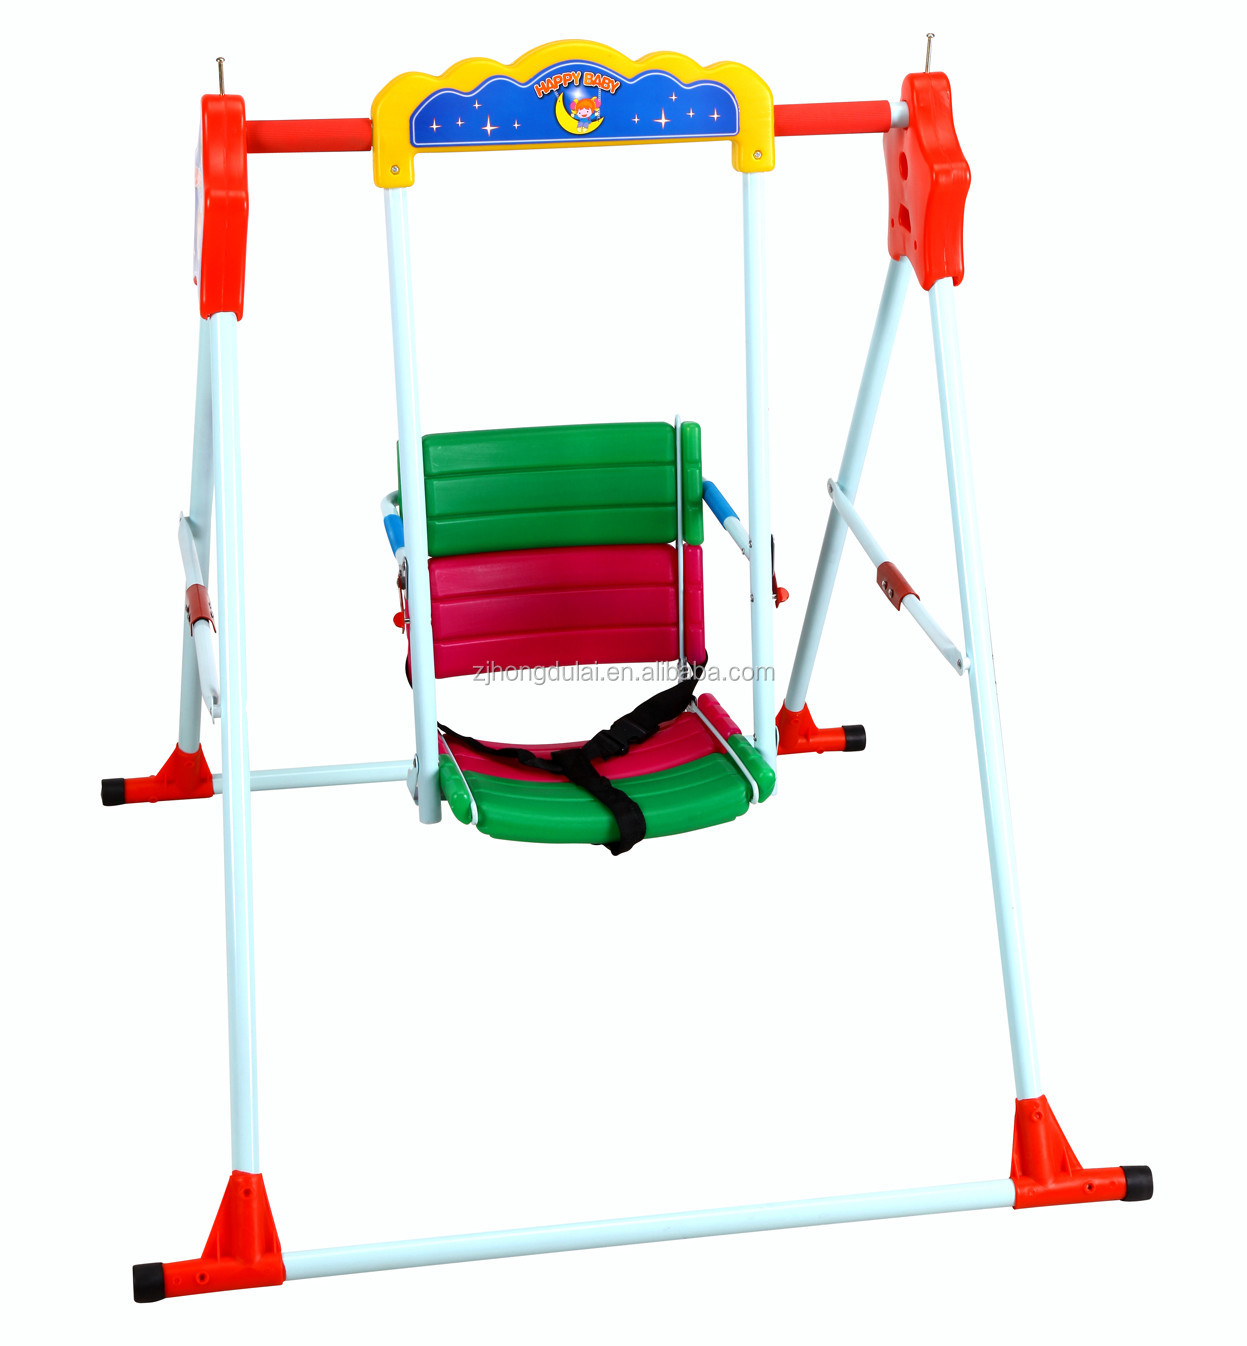 HDL~7553 kids swing with canopybaby swing  sc 1 st  Alibaba & Hdl~7553 Kids Swing With CanopyBaby Swing - Buy Baby SwingBaby ...